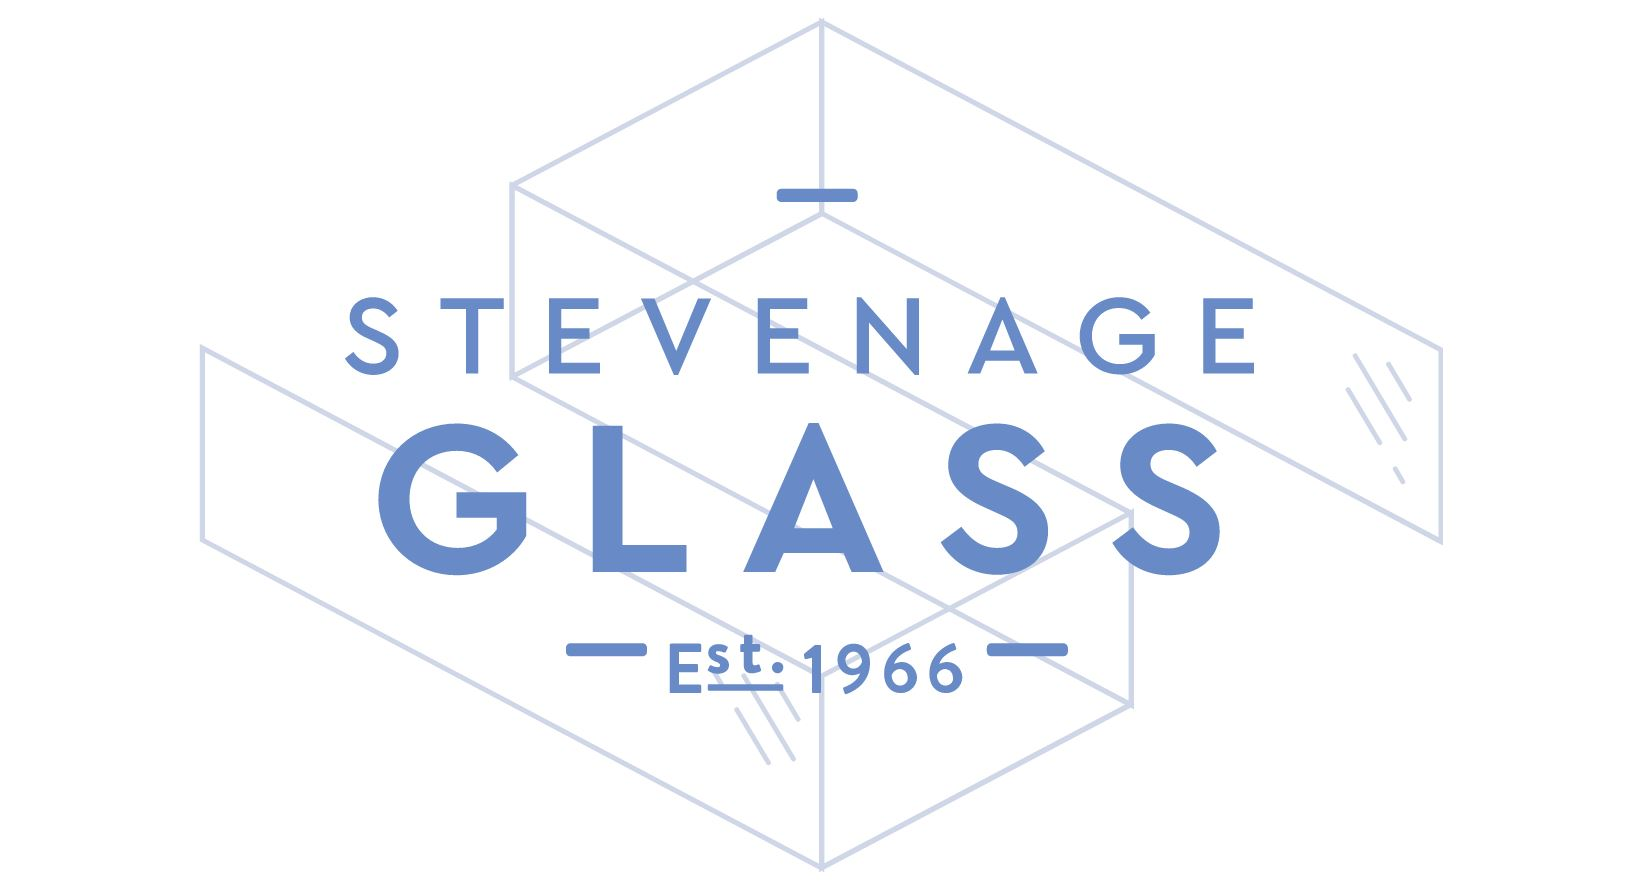 Read Stevenage Glass Company LTD Reviews